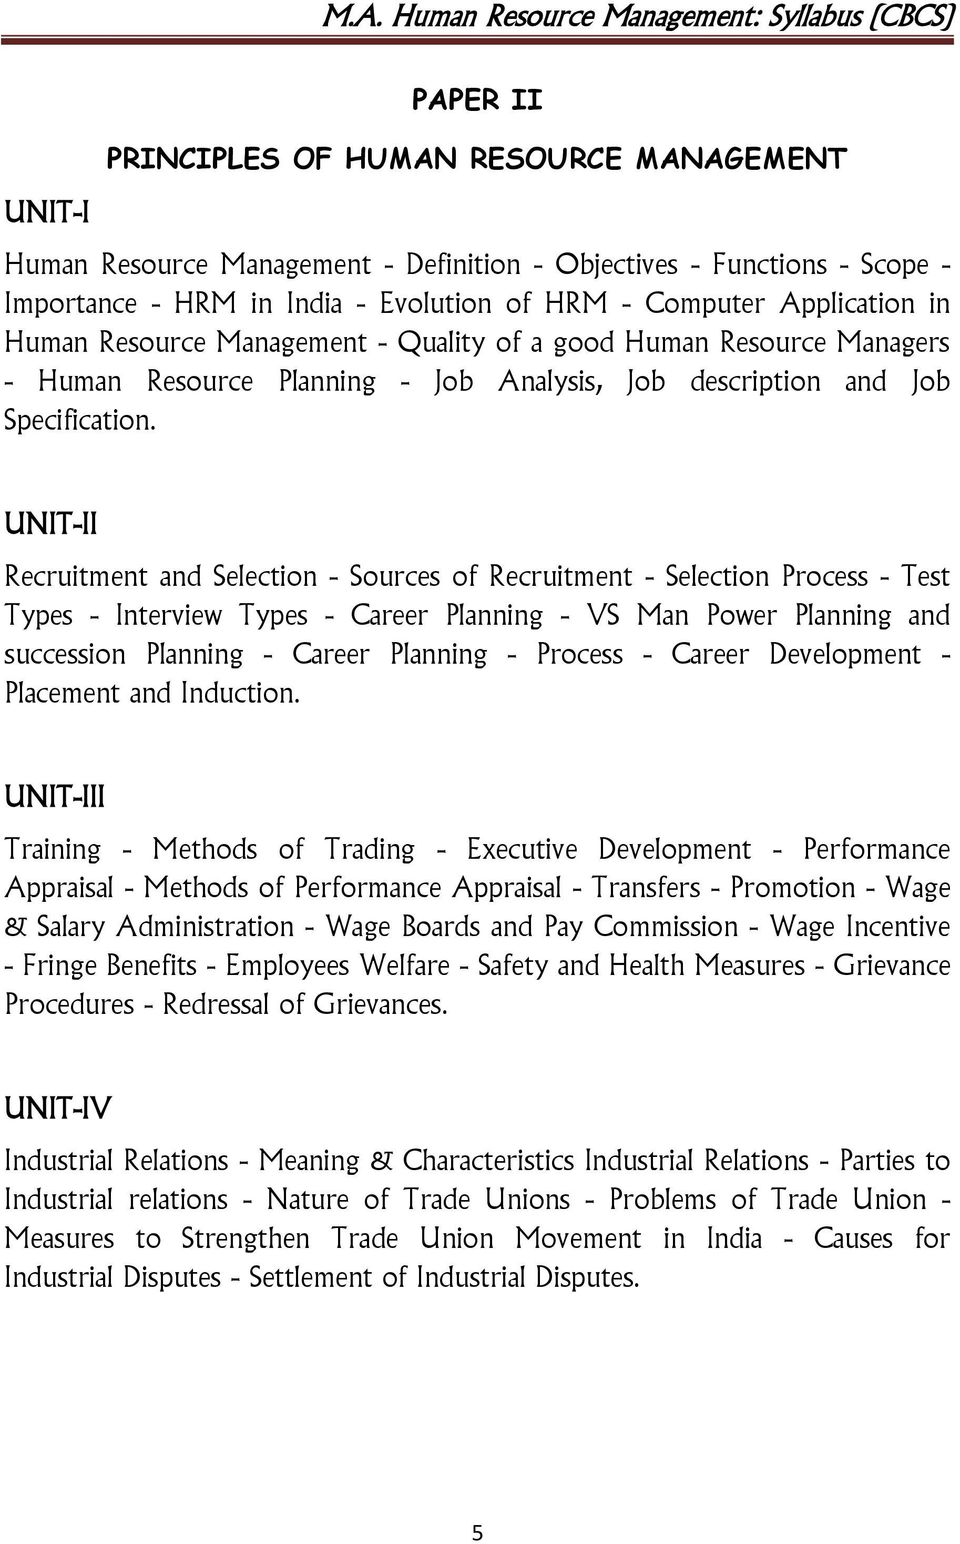 UNIT-II Recruitment and Selection - Sources of Recruitment - Selection Process - Test Types - Interview Types - Career Planning - VS Man Power Planning and succession Planning - Career Planning -